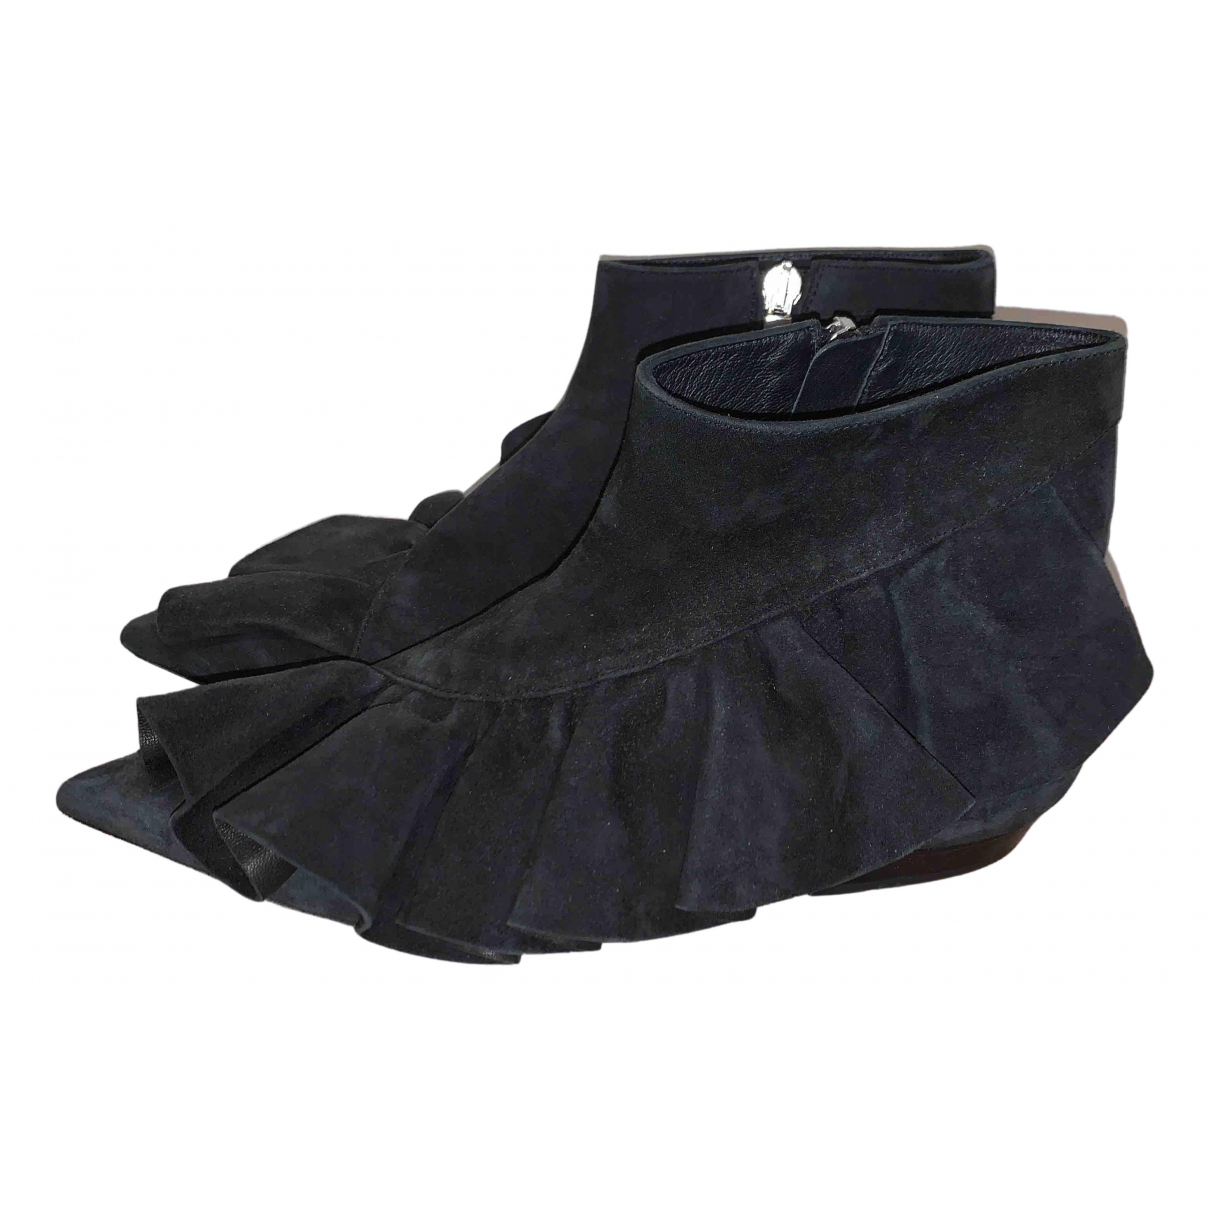 J.w. Anderson N Black Suede Ankle boots for Women 39 EU